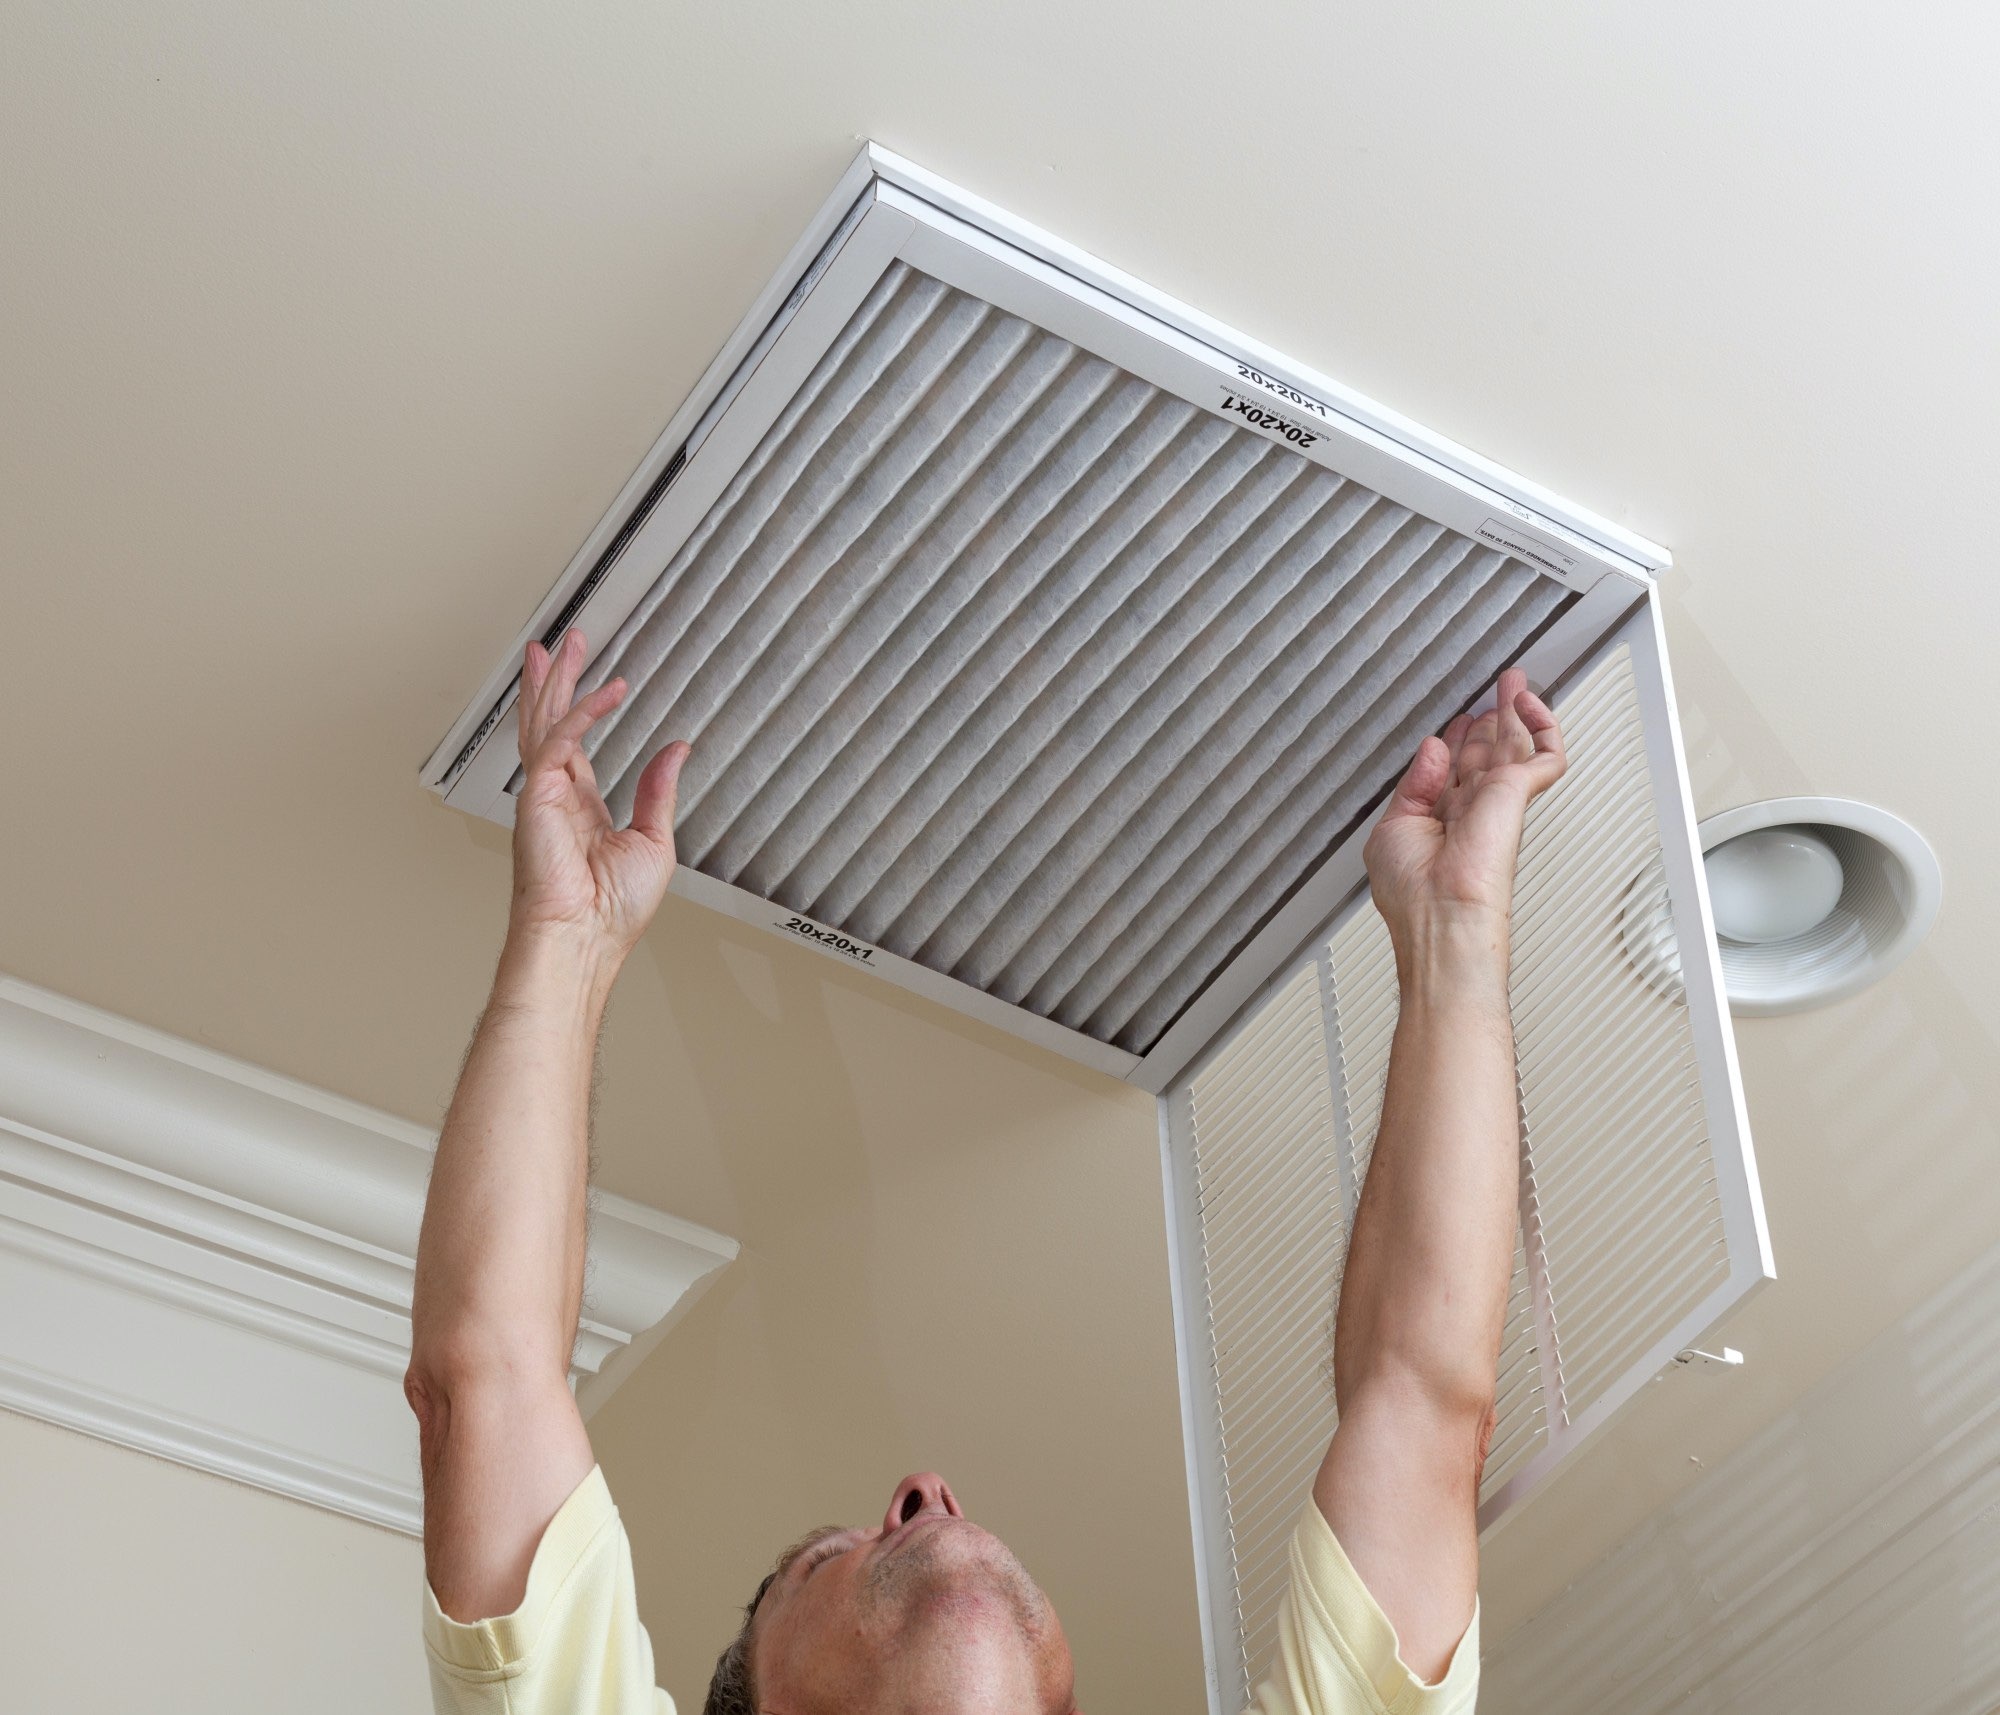 HVAC Maintenance 101: How to Keep All of Your HVAC System Components In Ship Shape Year-Round